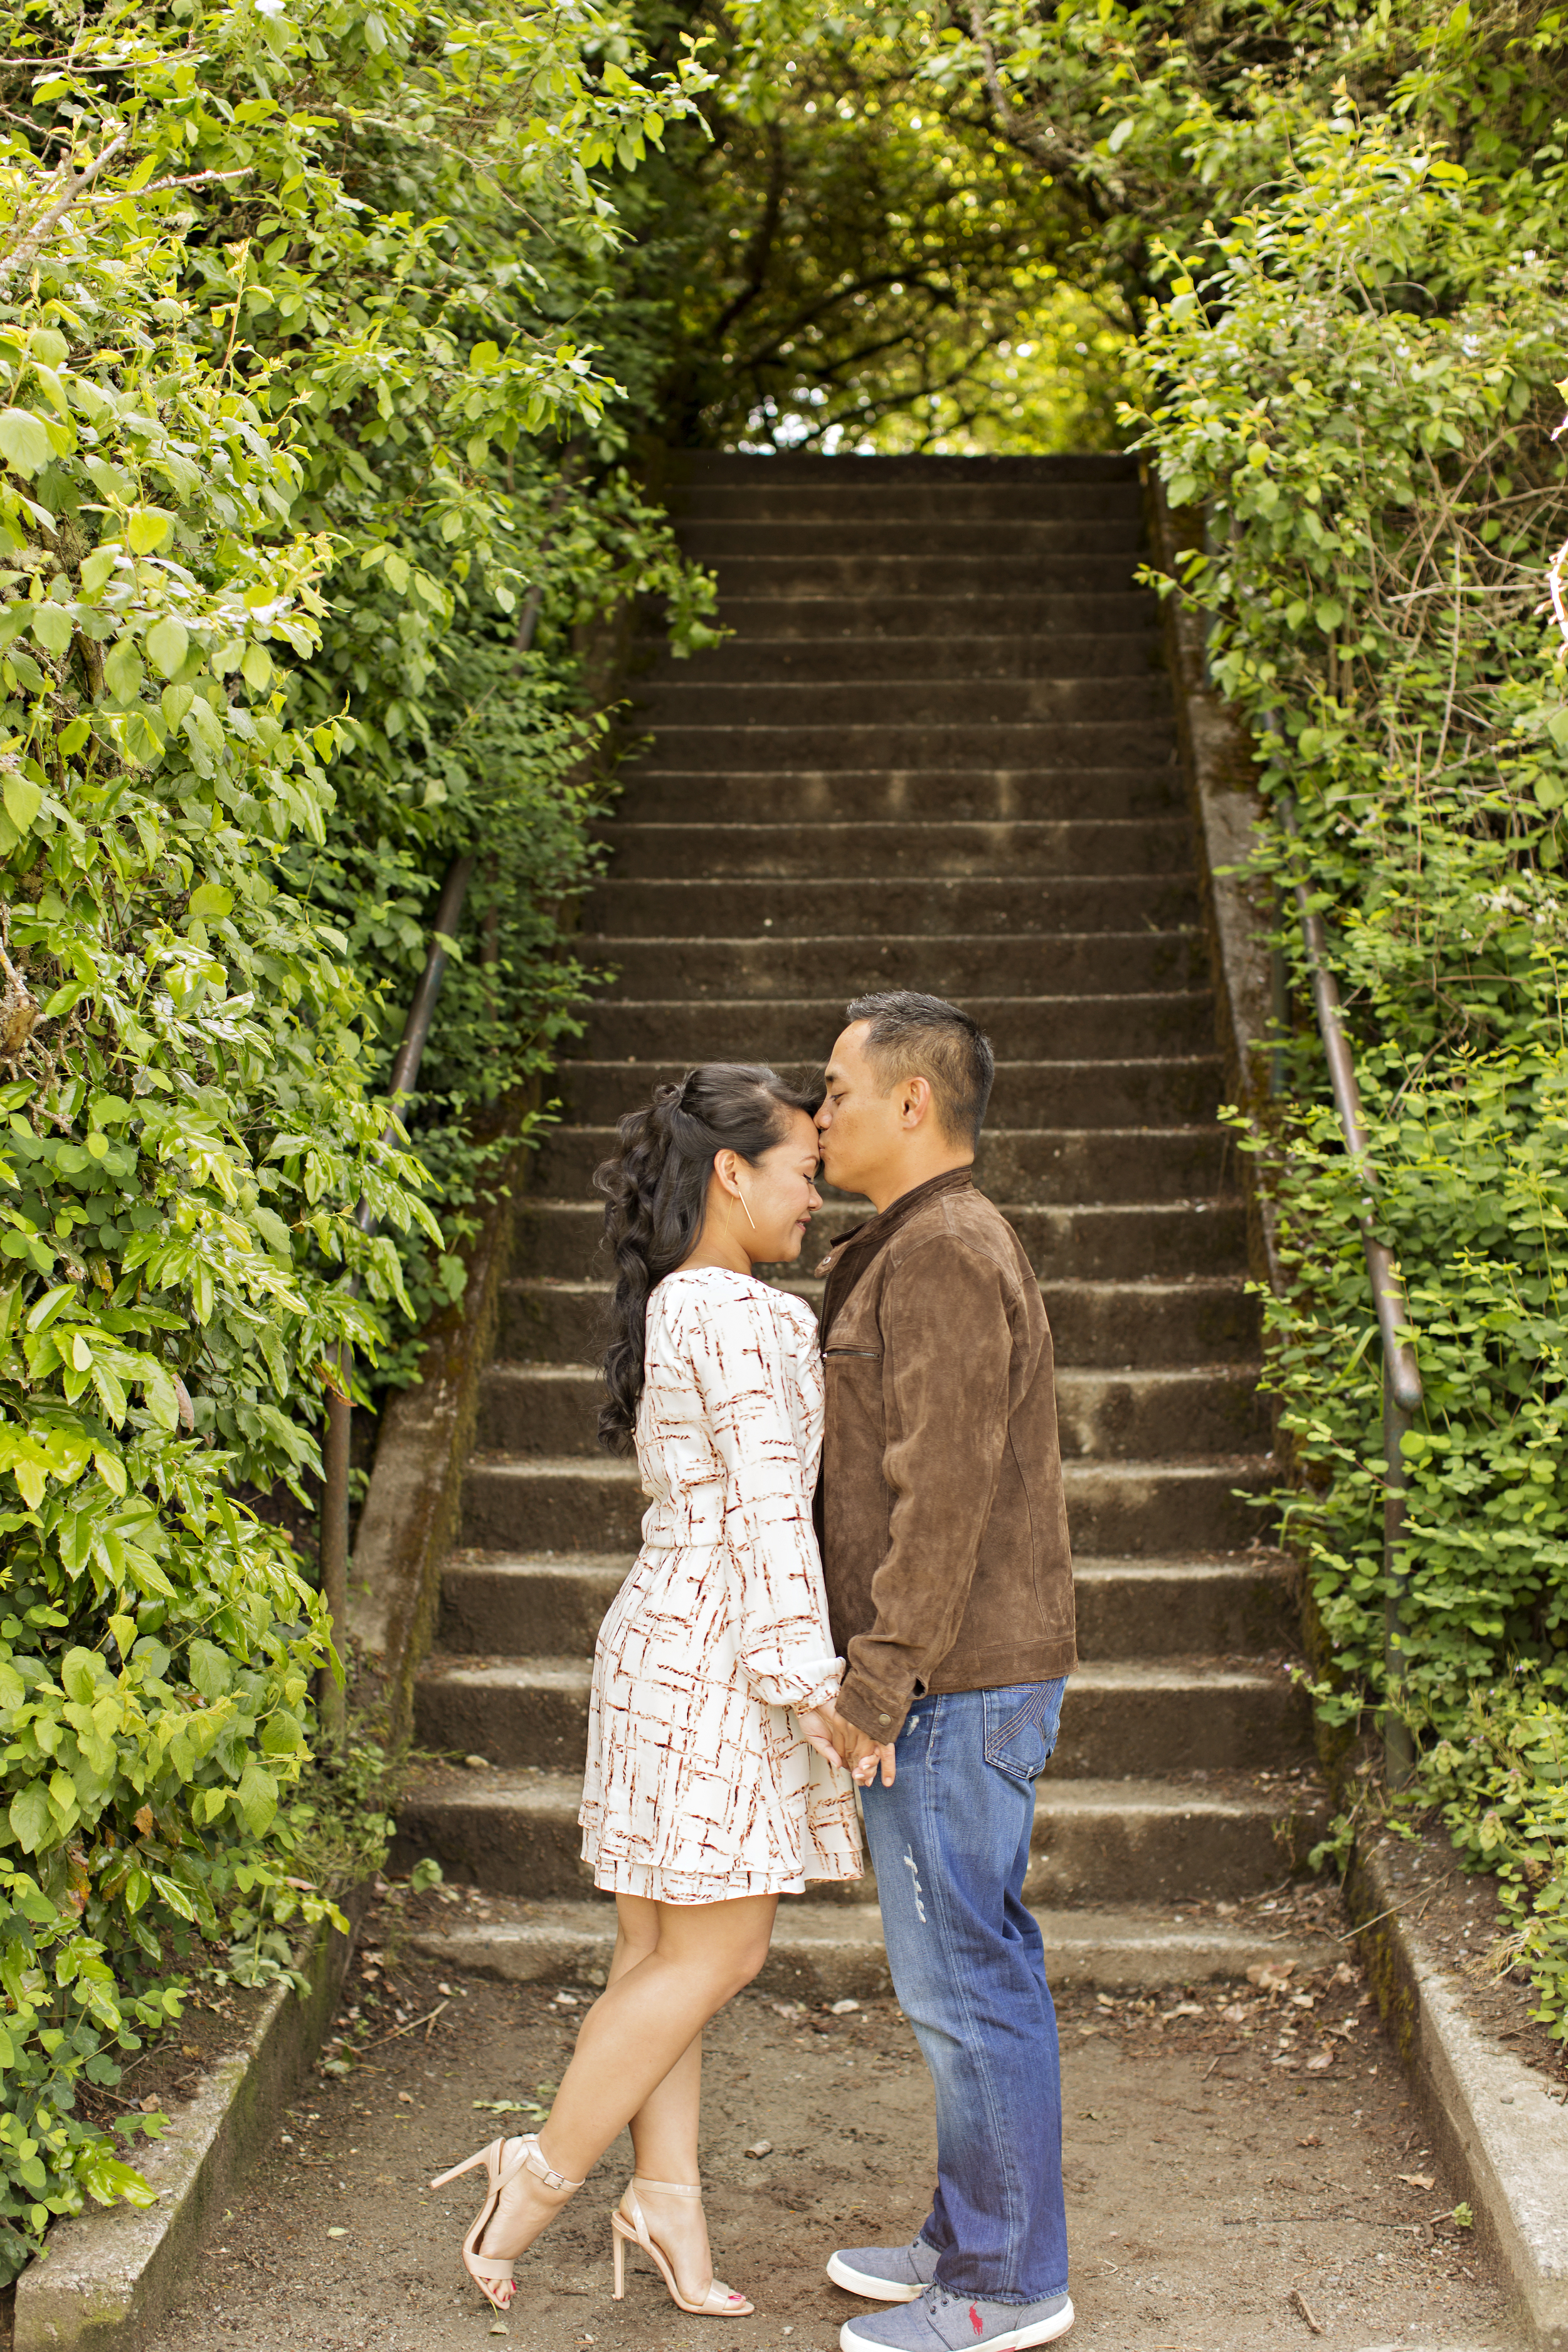 Seattle Engagement Session | Discovery Park Engagement | Wedding Wise Seattle Planning | Courtney Bowlden Photography